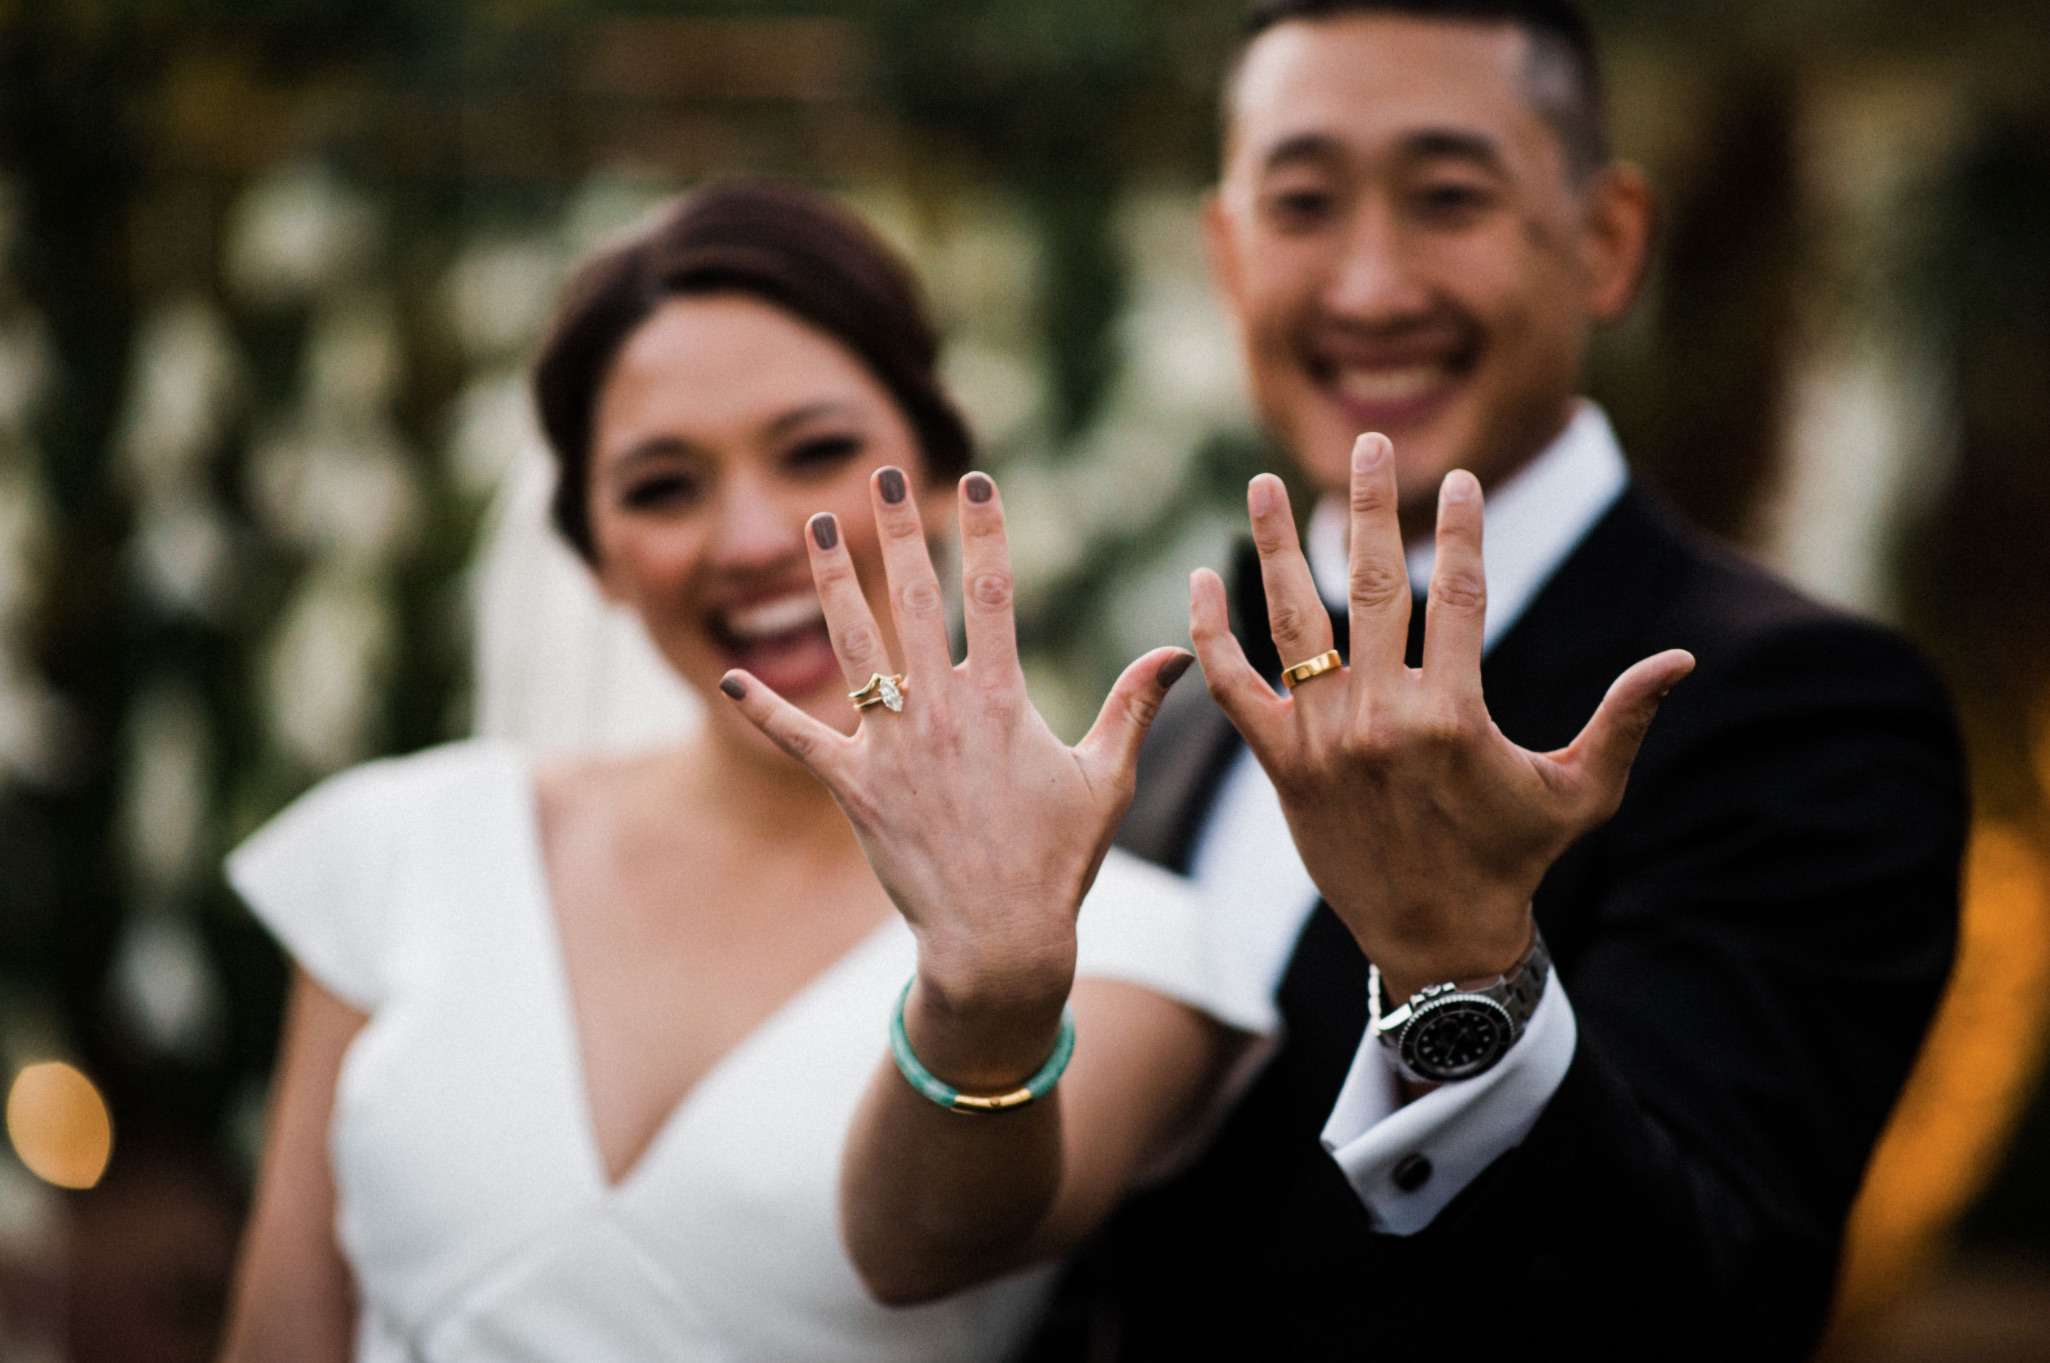 Newlyweds happily showing off rings